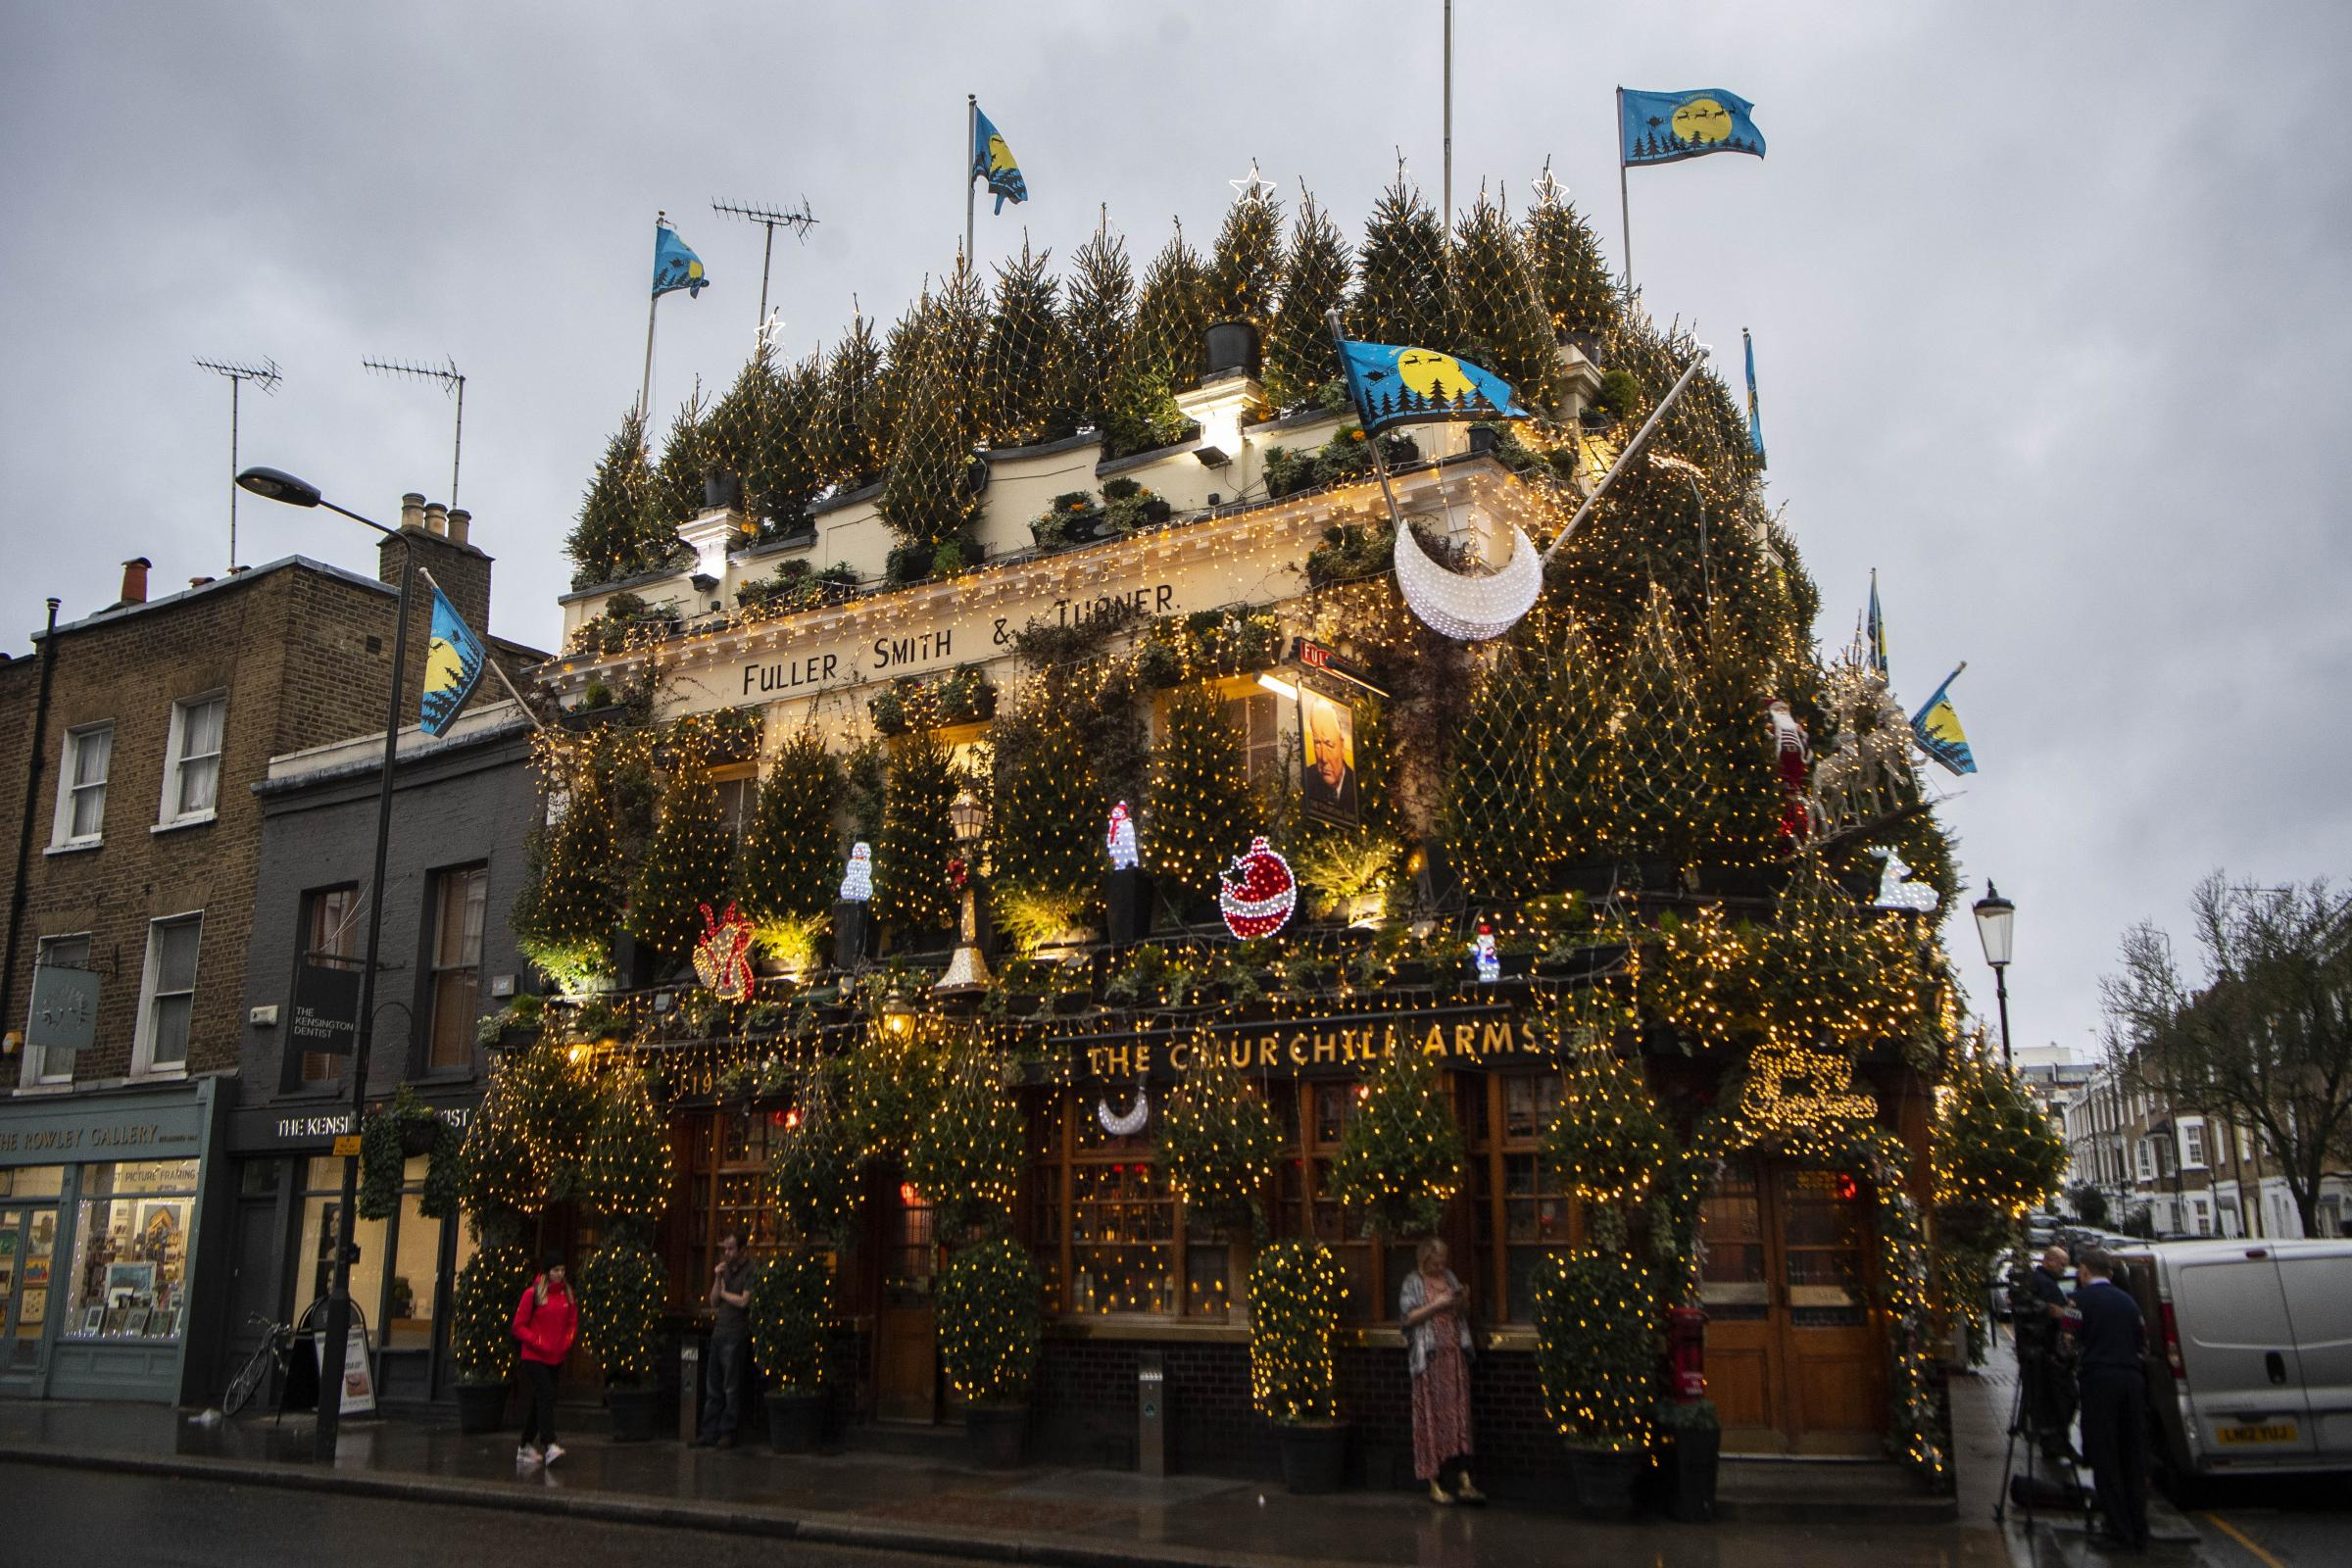 The Churchill Arms decorated for Christmas